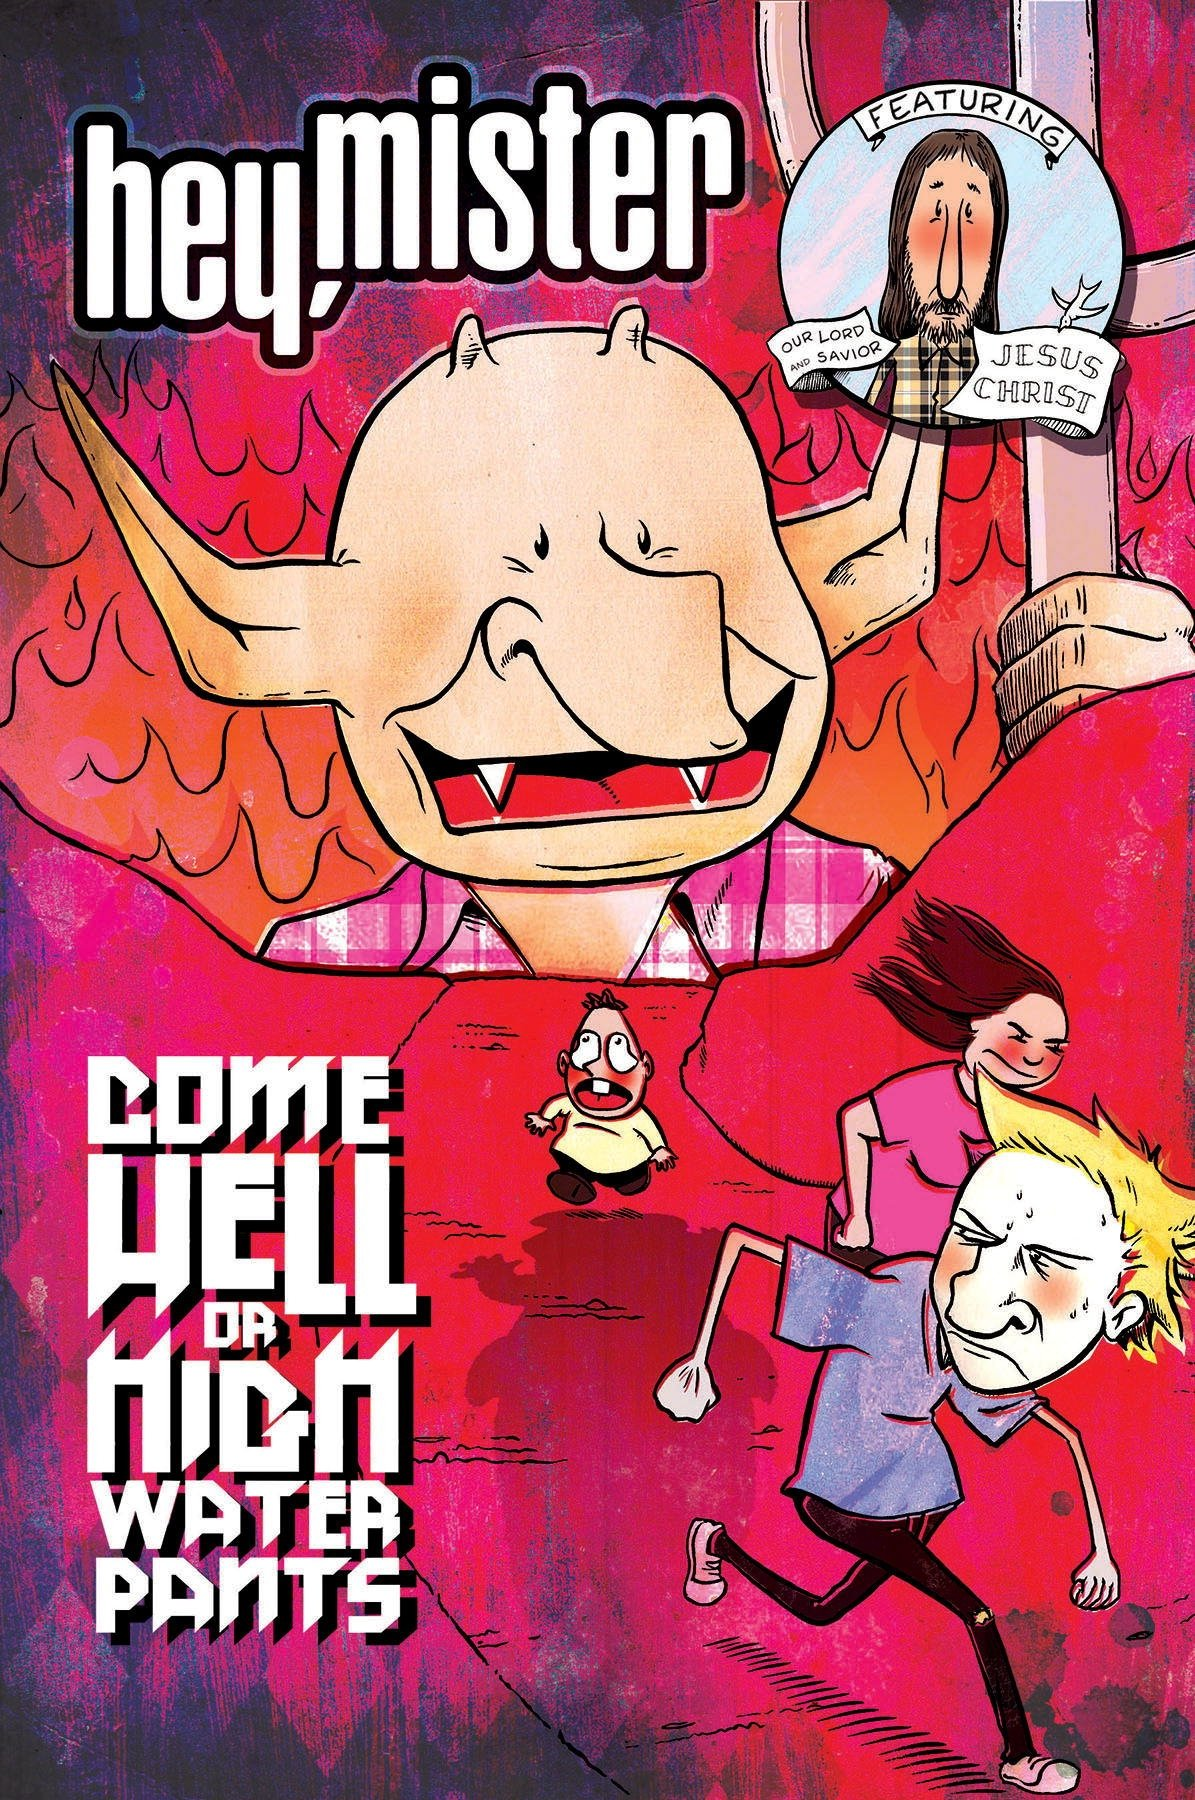 Read Online Hey, Mister: Come Hell or Highwater Pants pdf epub